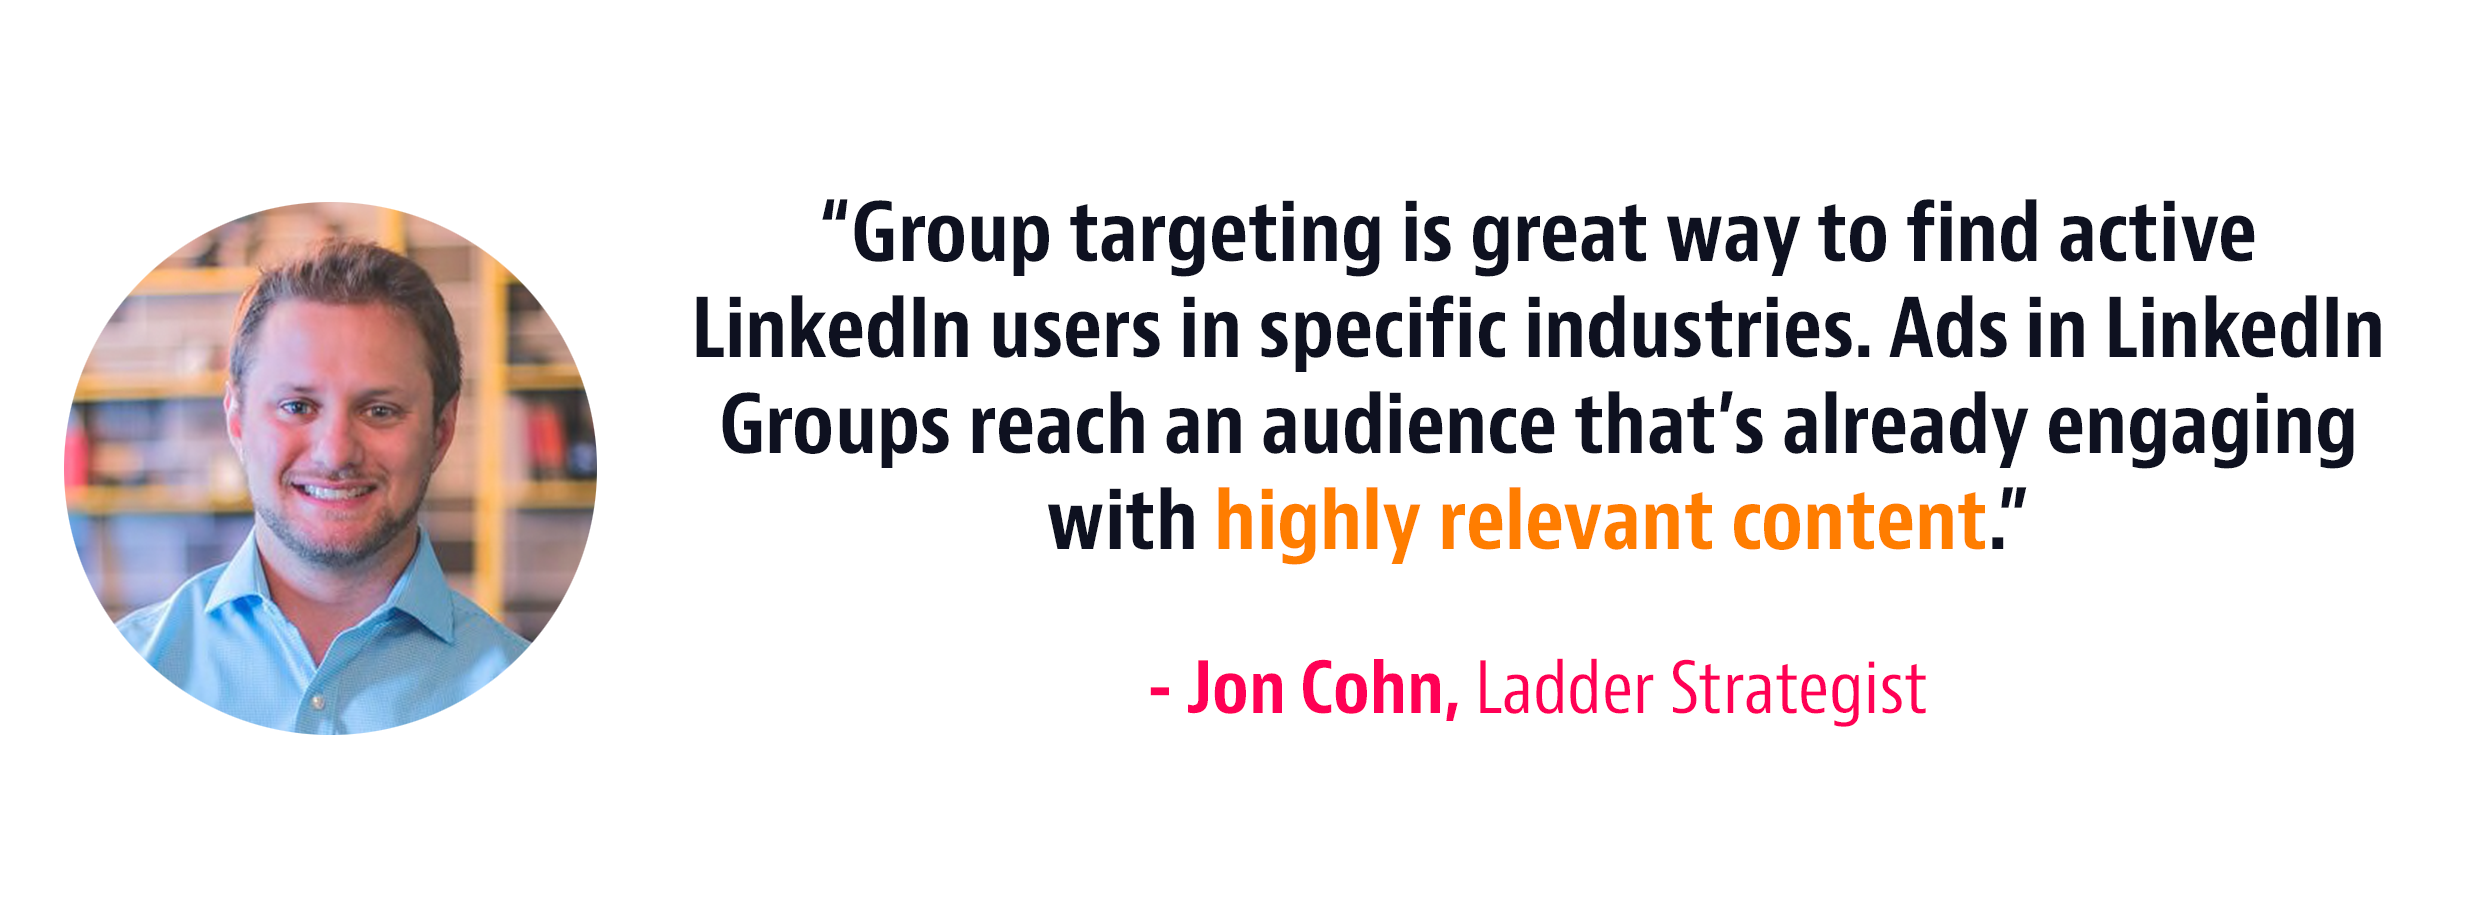 group targeting marketing strategy